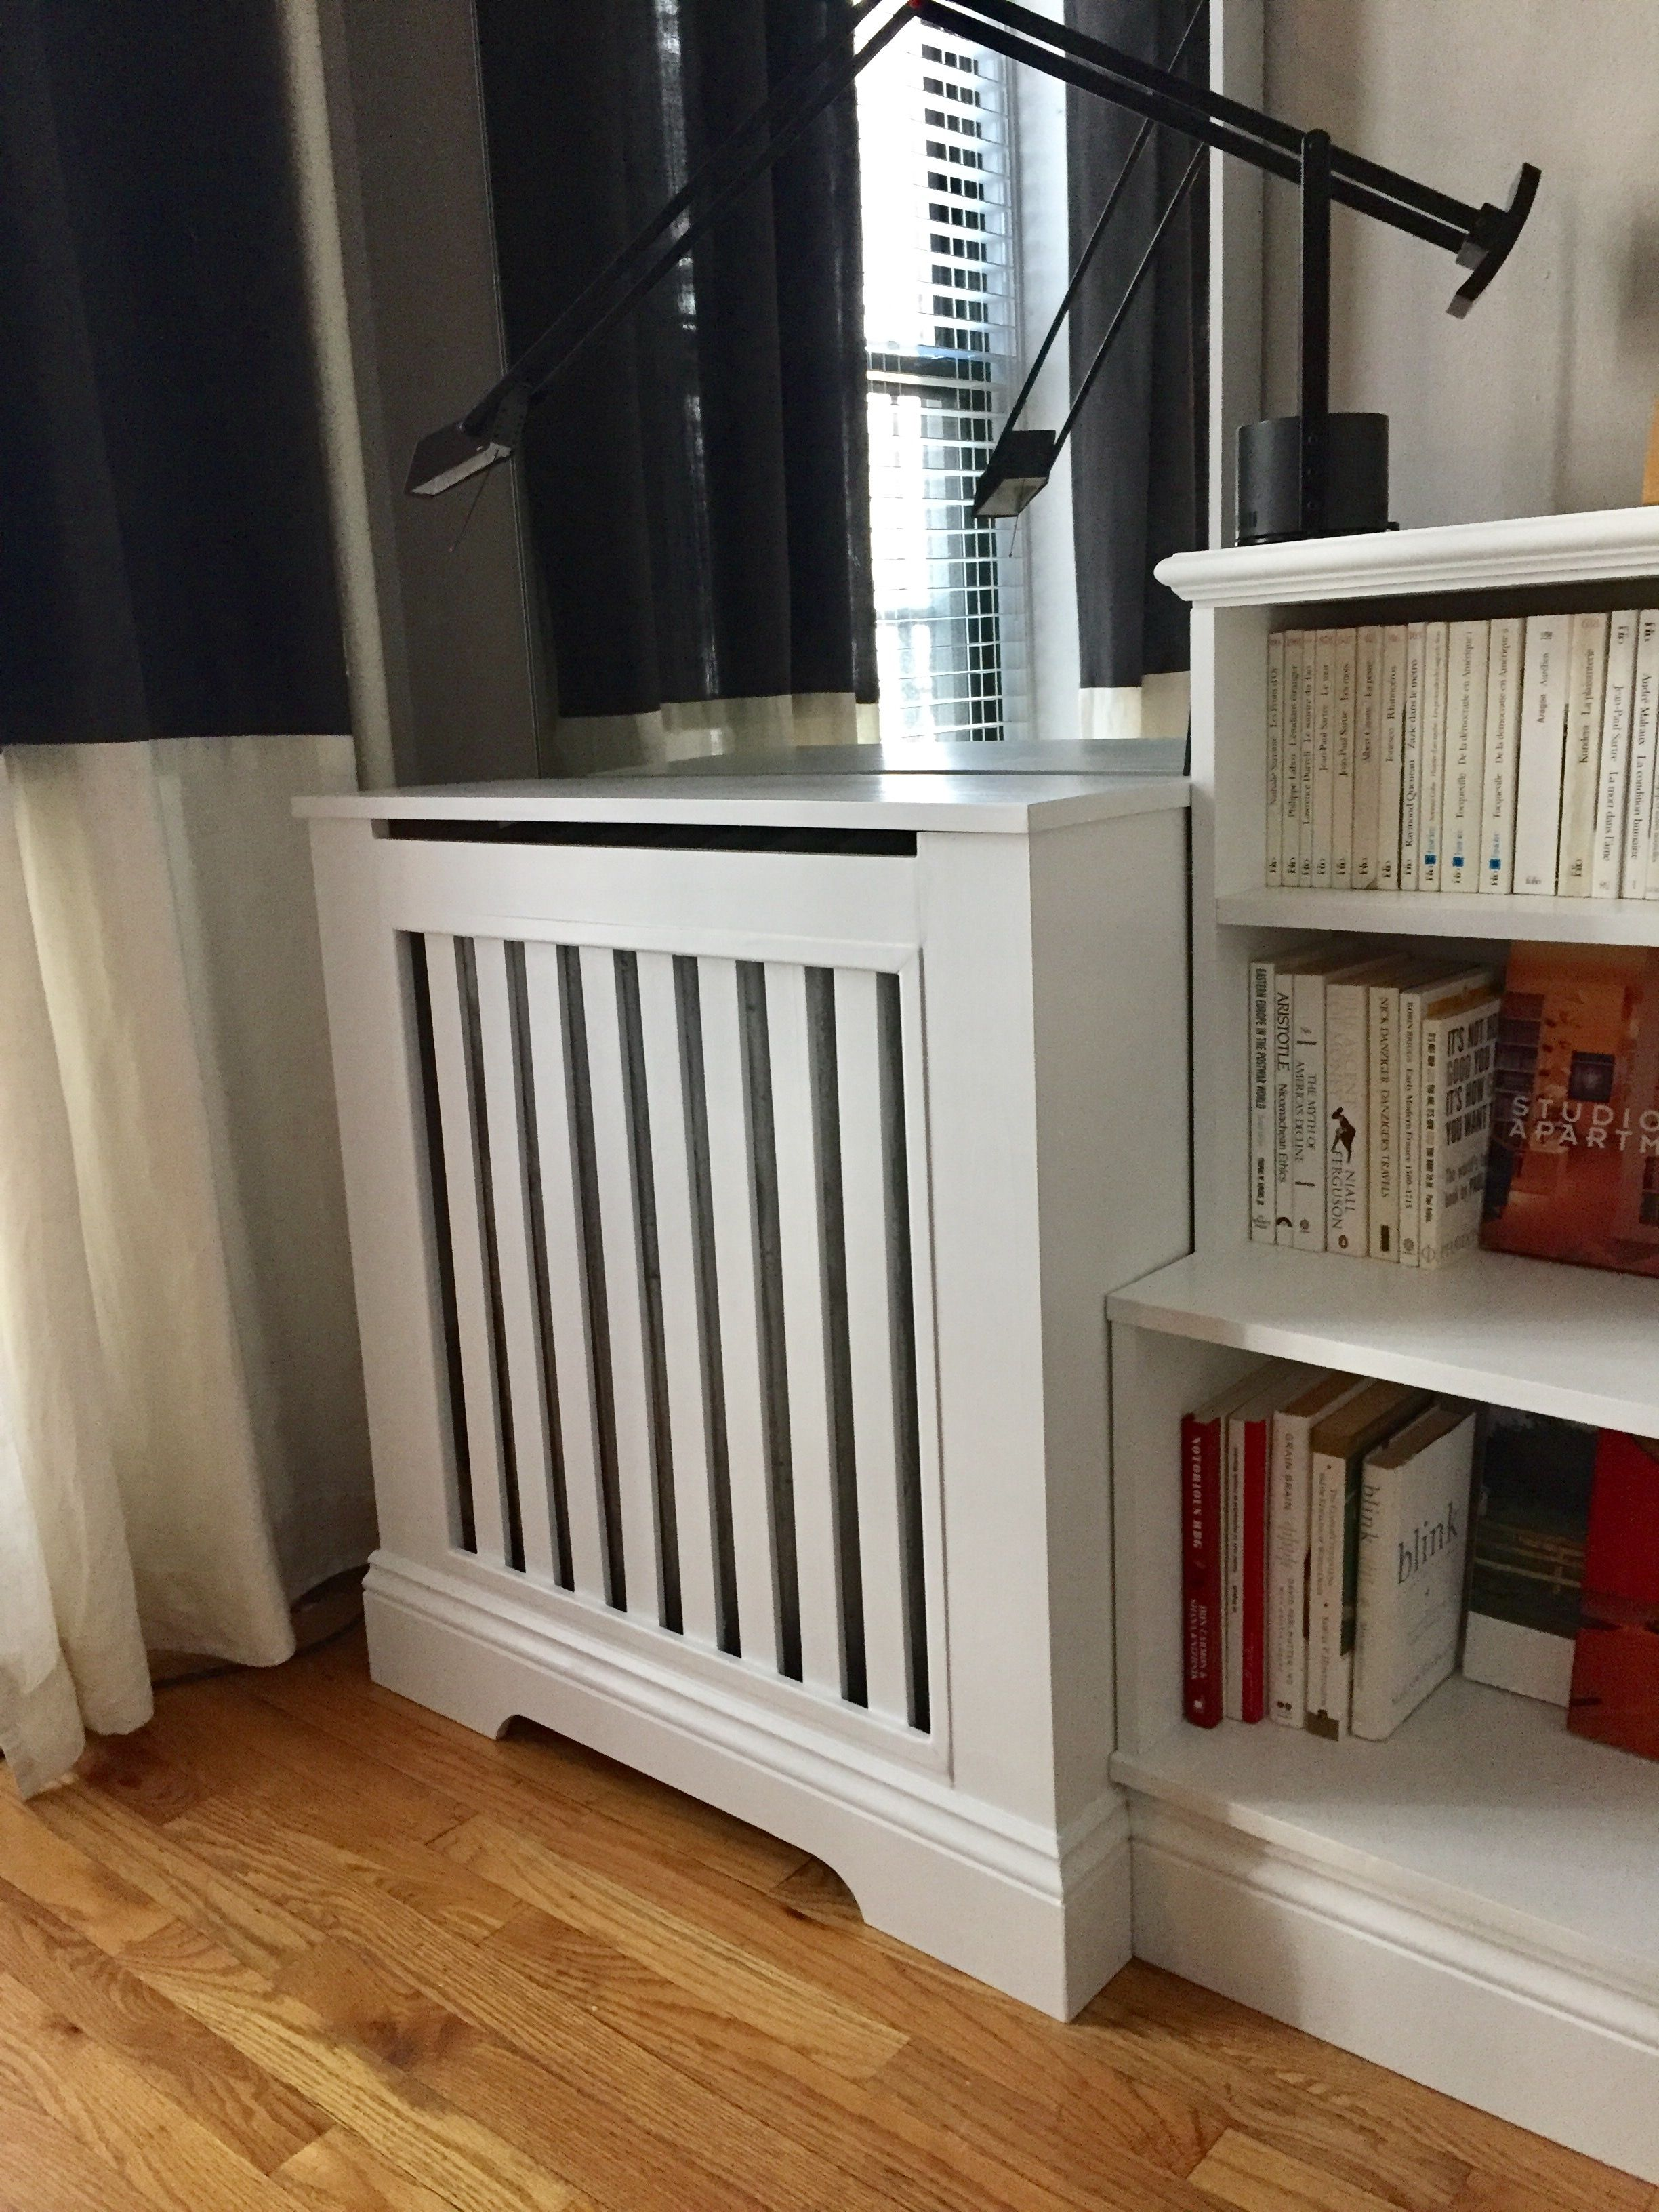 Diy Radiator Cover Made Using Pre Primed Pine Trim And White Paint Radiator Cover Diy Radiator Cover Radiators